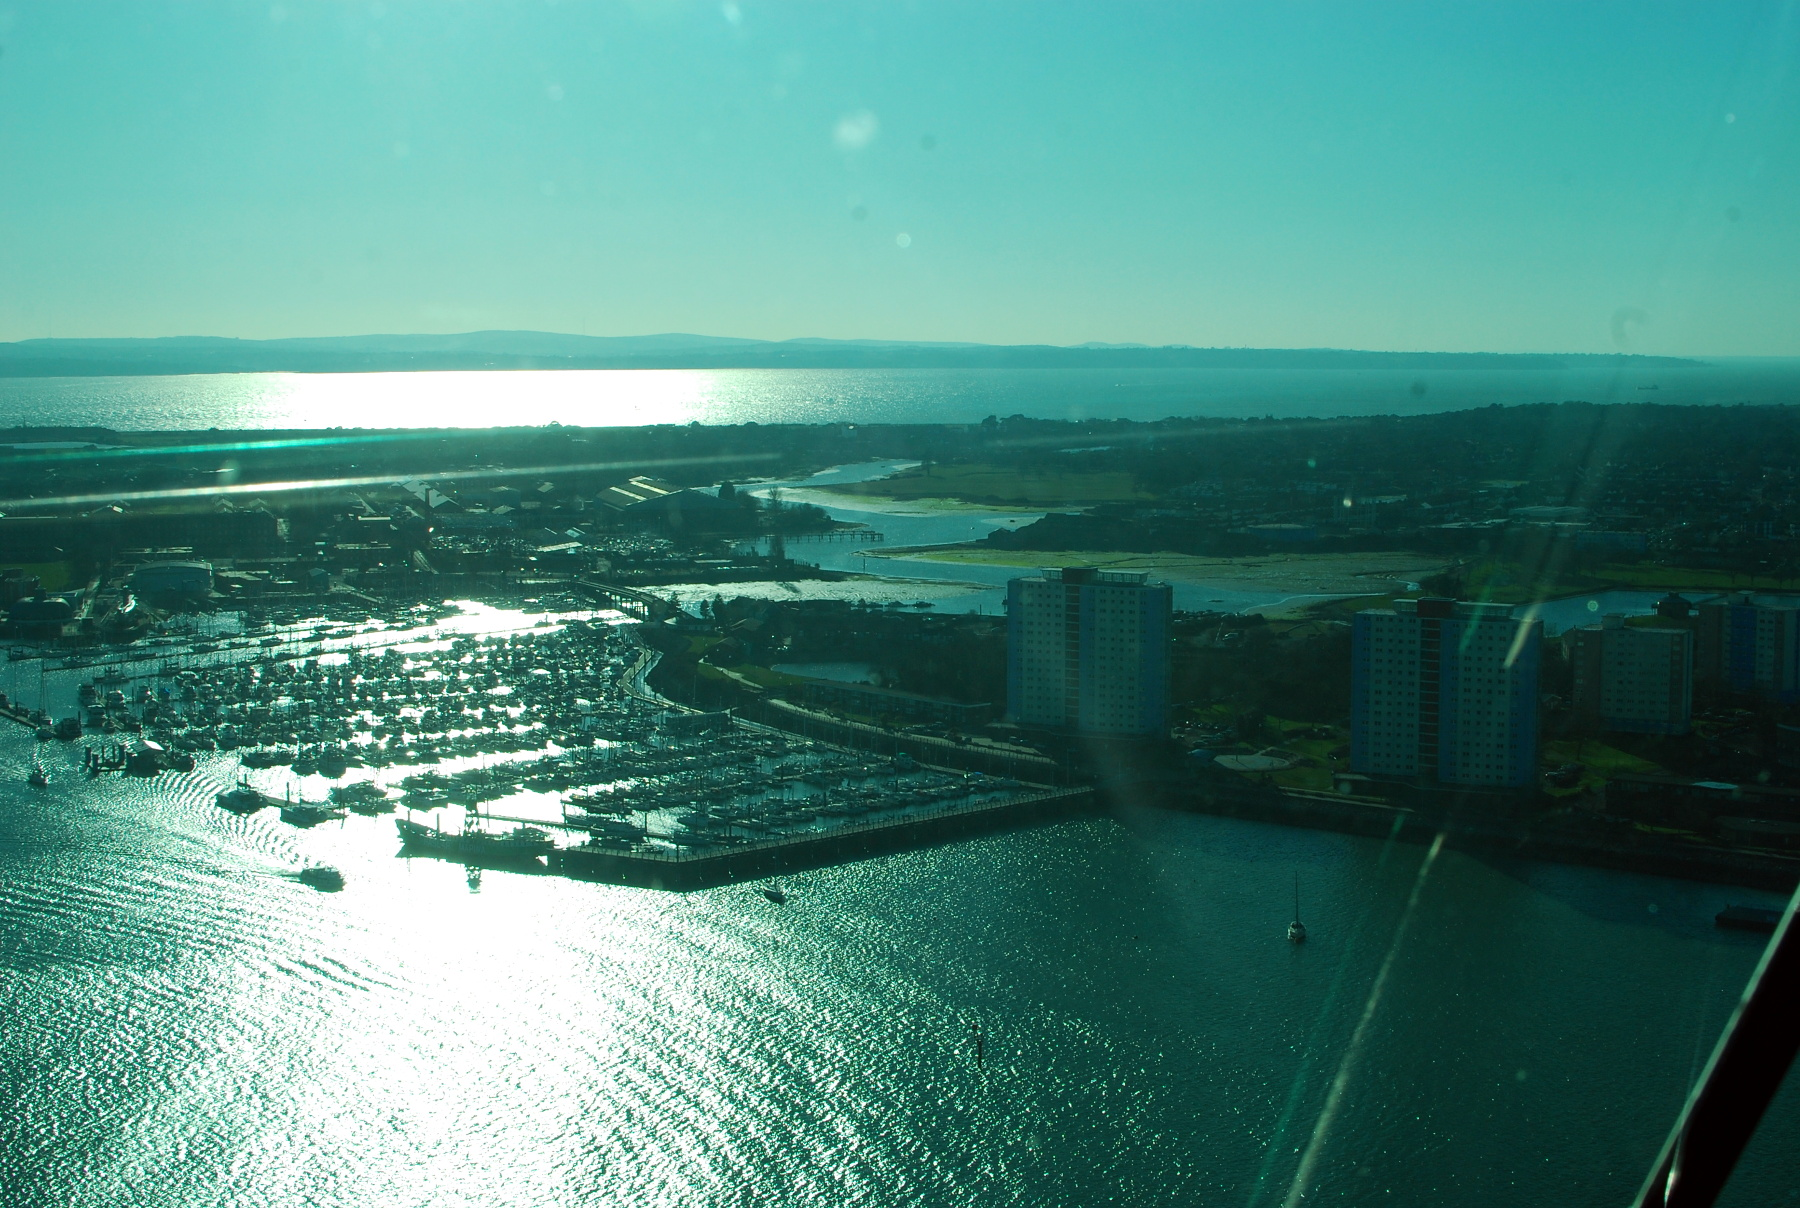 View of Haslar Lake from Spinnaker Tower